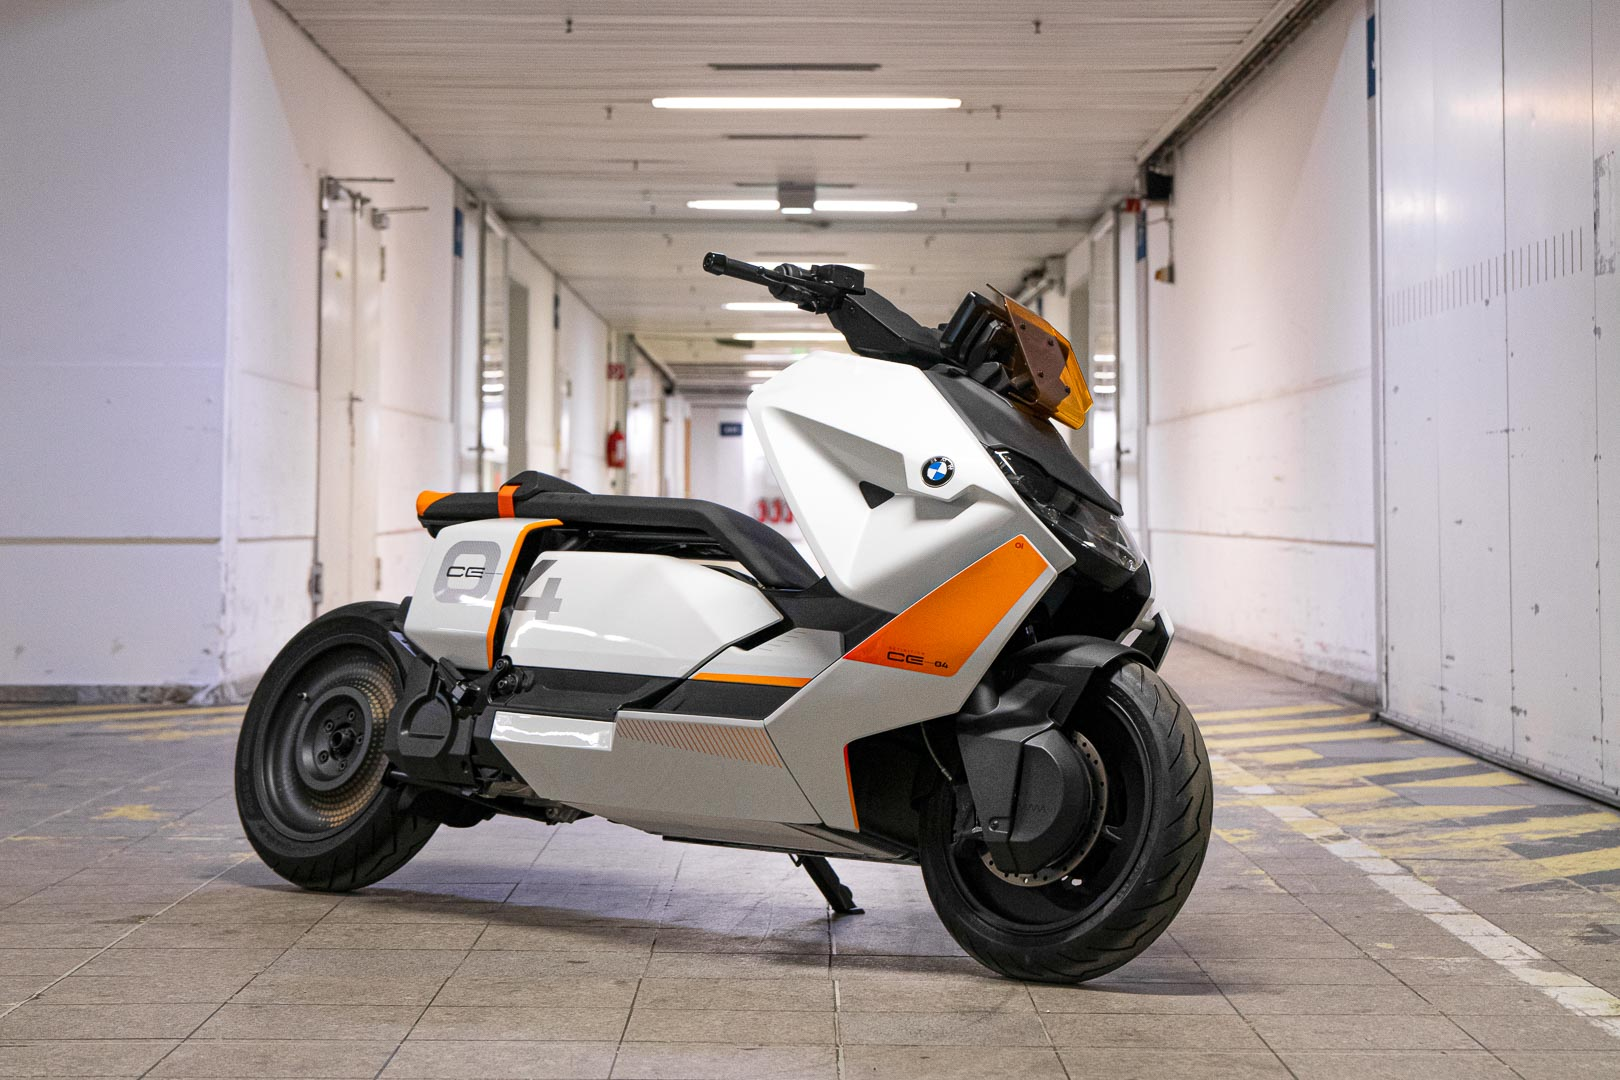 BMW Definition CE 04 Concept Scooter First Look